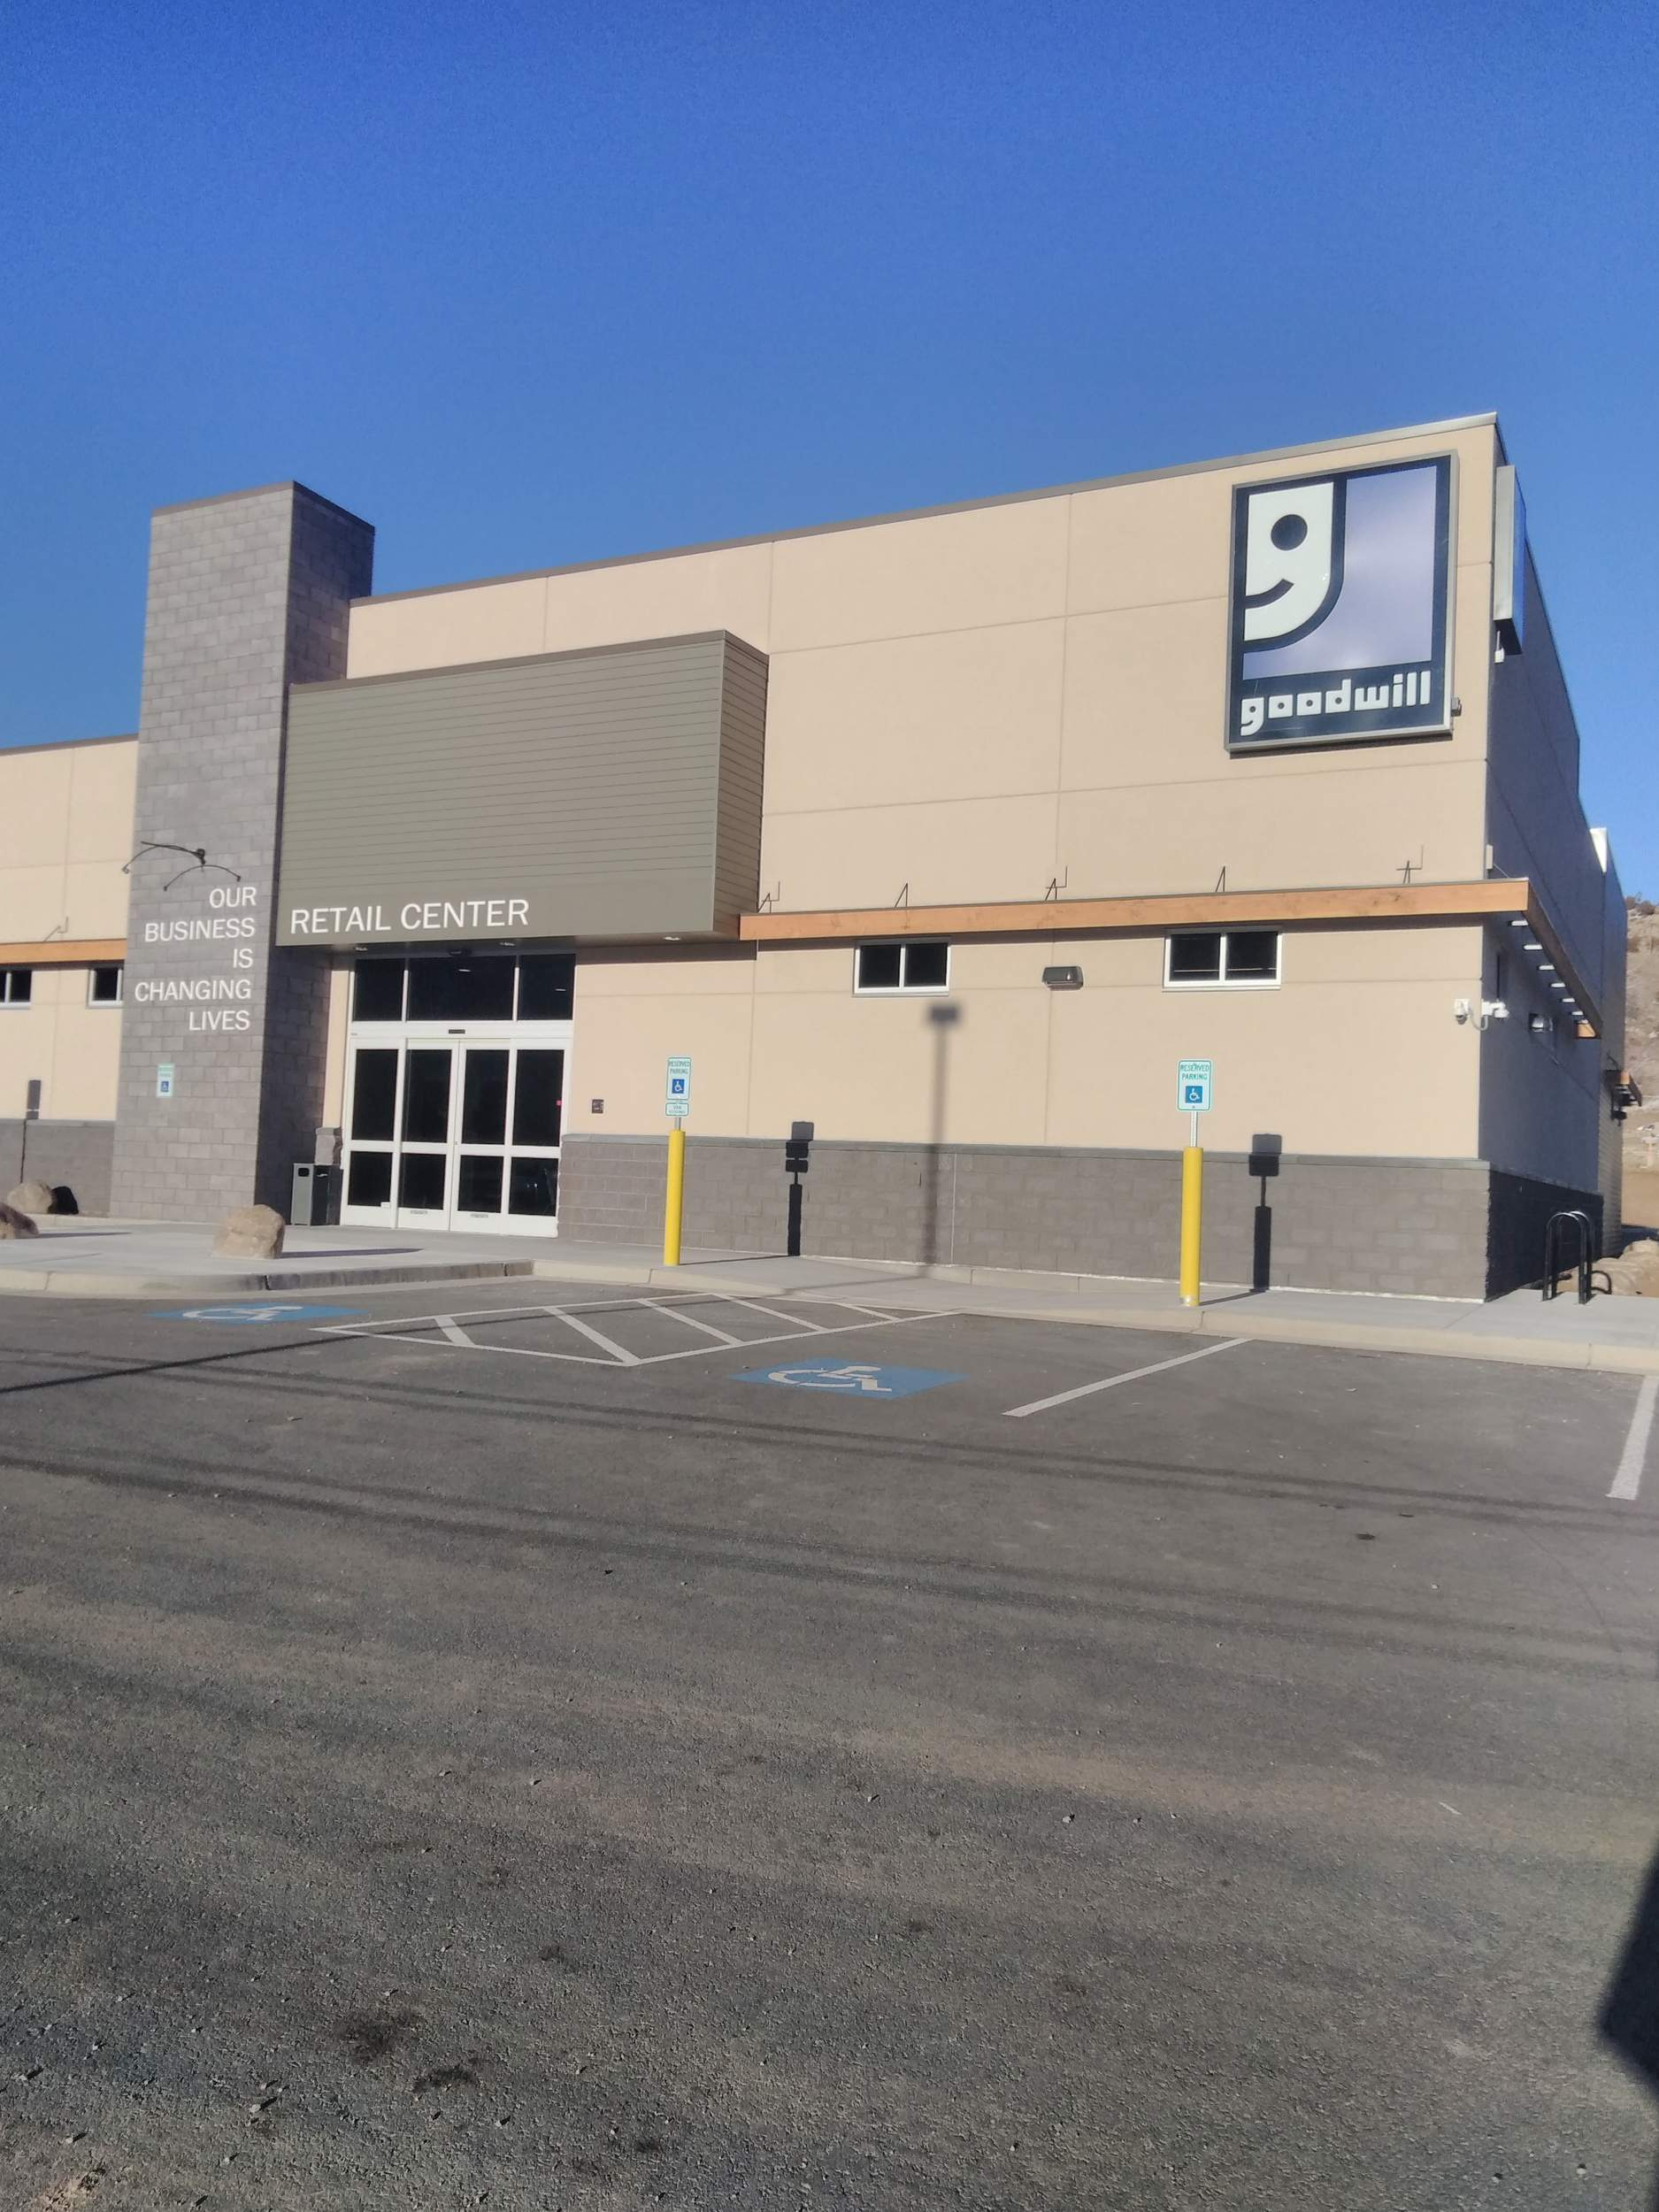 Discover Goodwill to open in Durango with all-day celebration